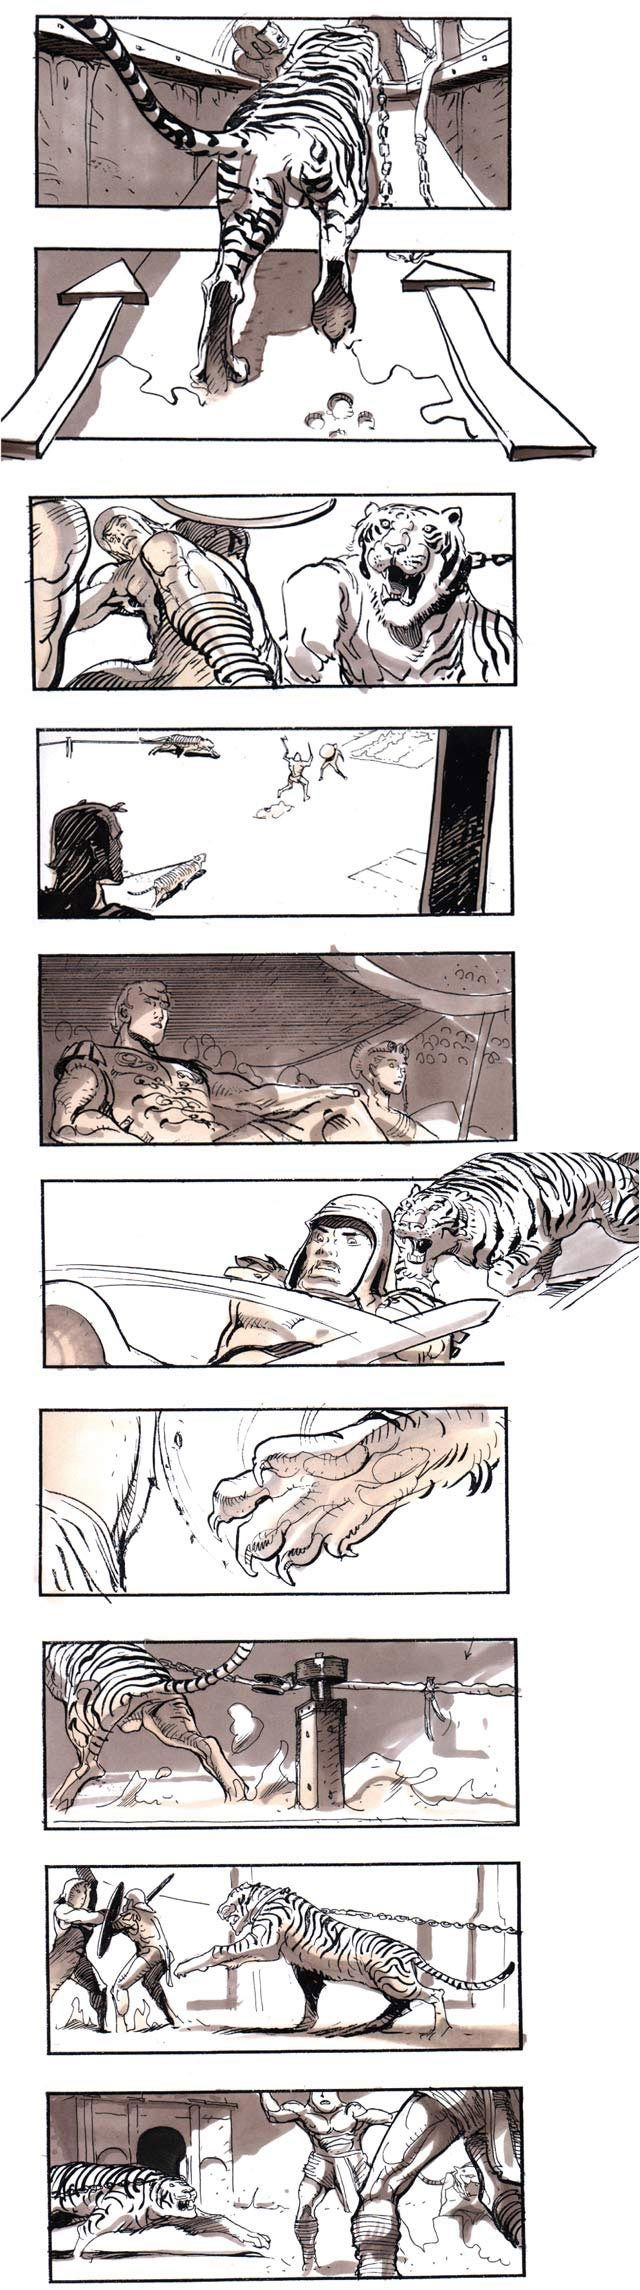 gladiator-storyboard-by-Sylvain-Despretz-Objects go out of the picture plane - Contrast of viewpoint, color, and detail. Use of asymmetrical balance for dynamic quality.